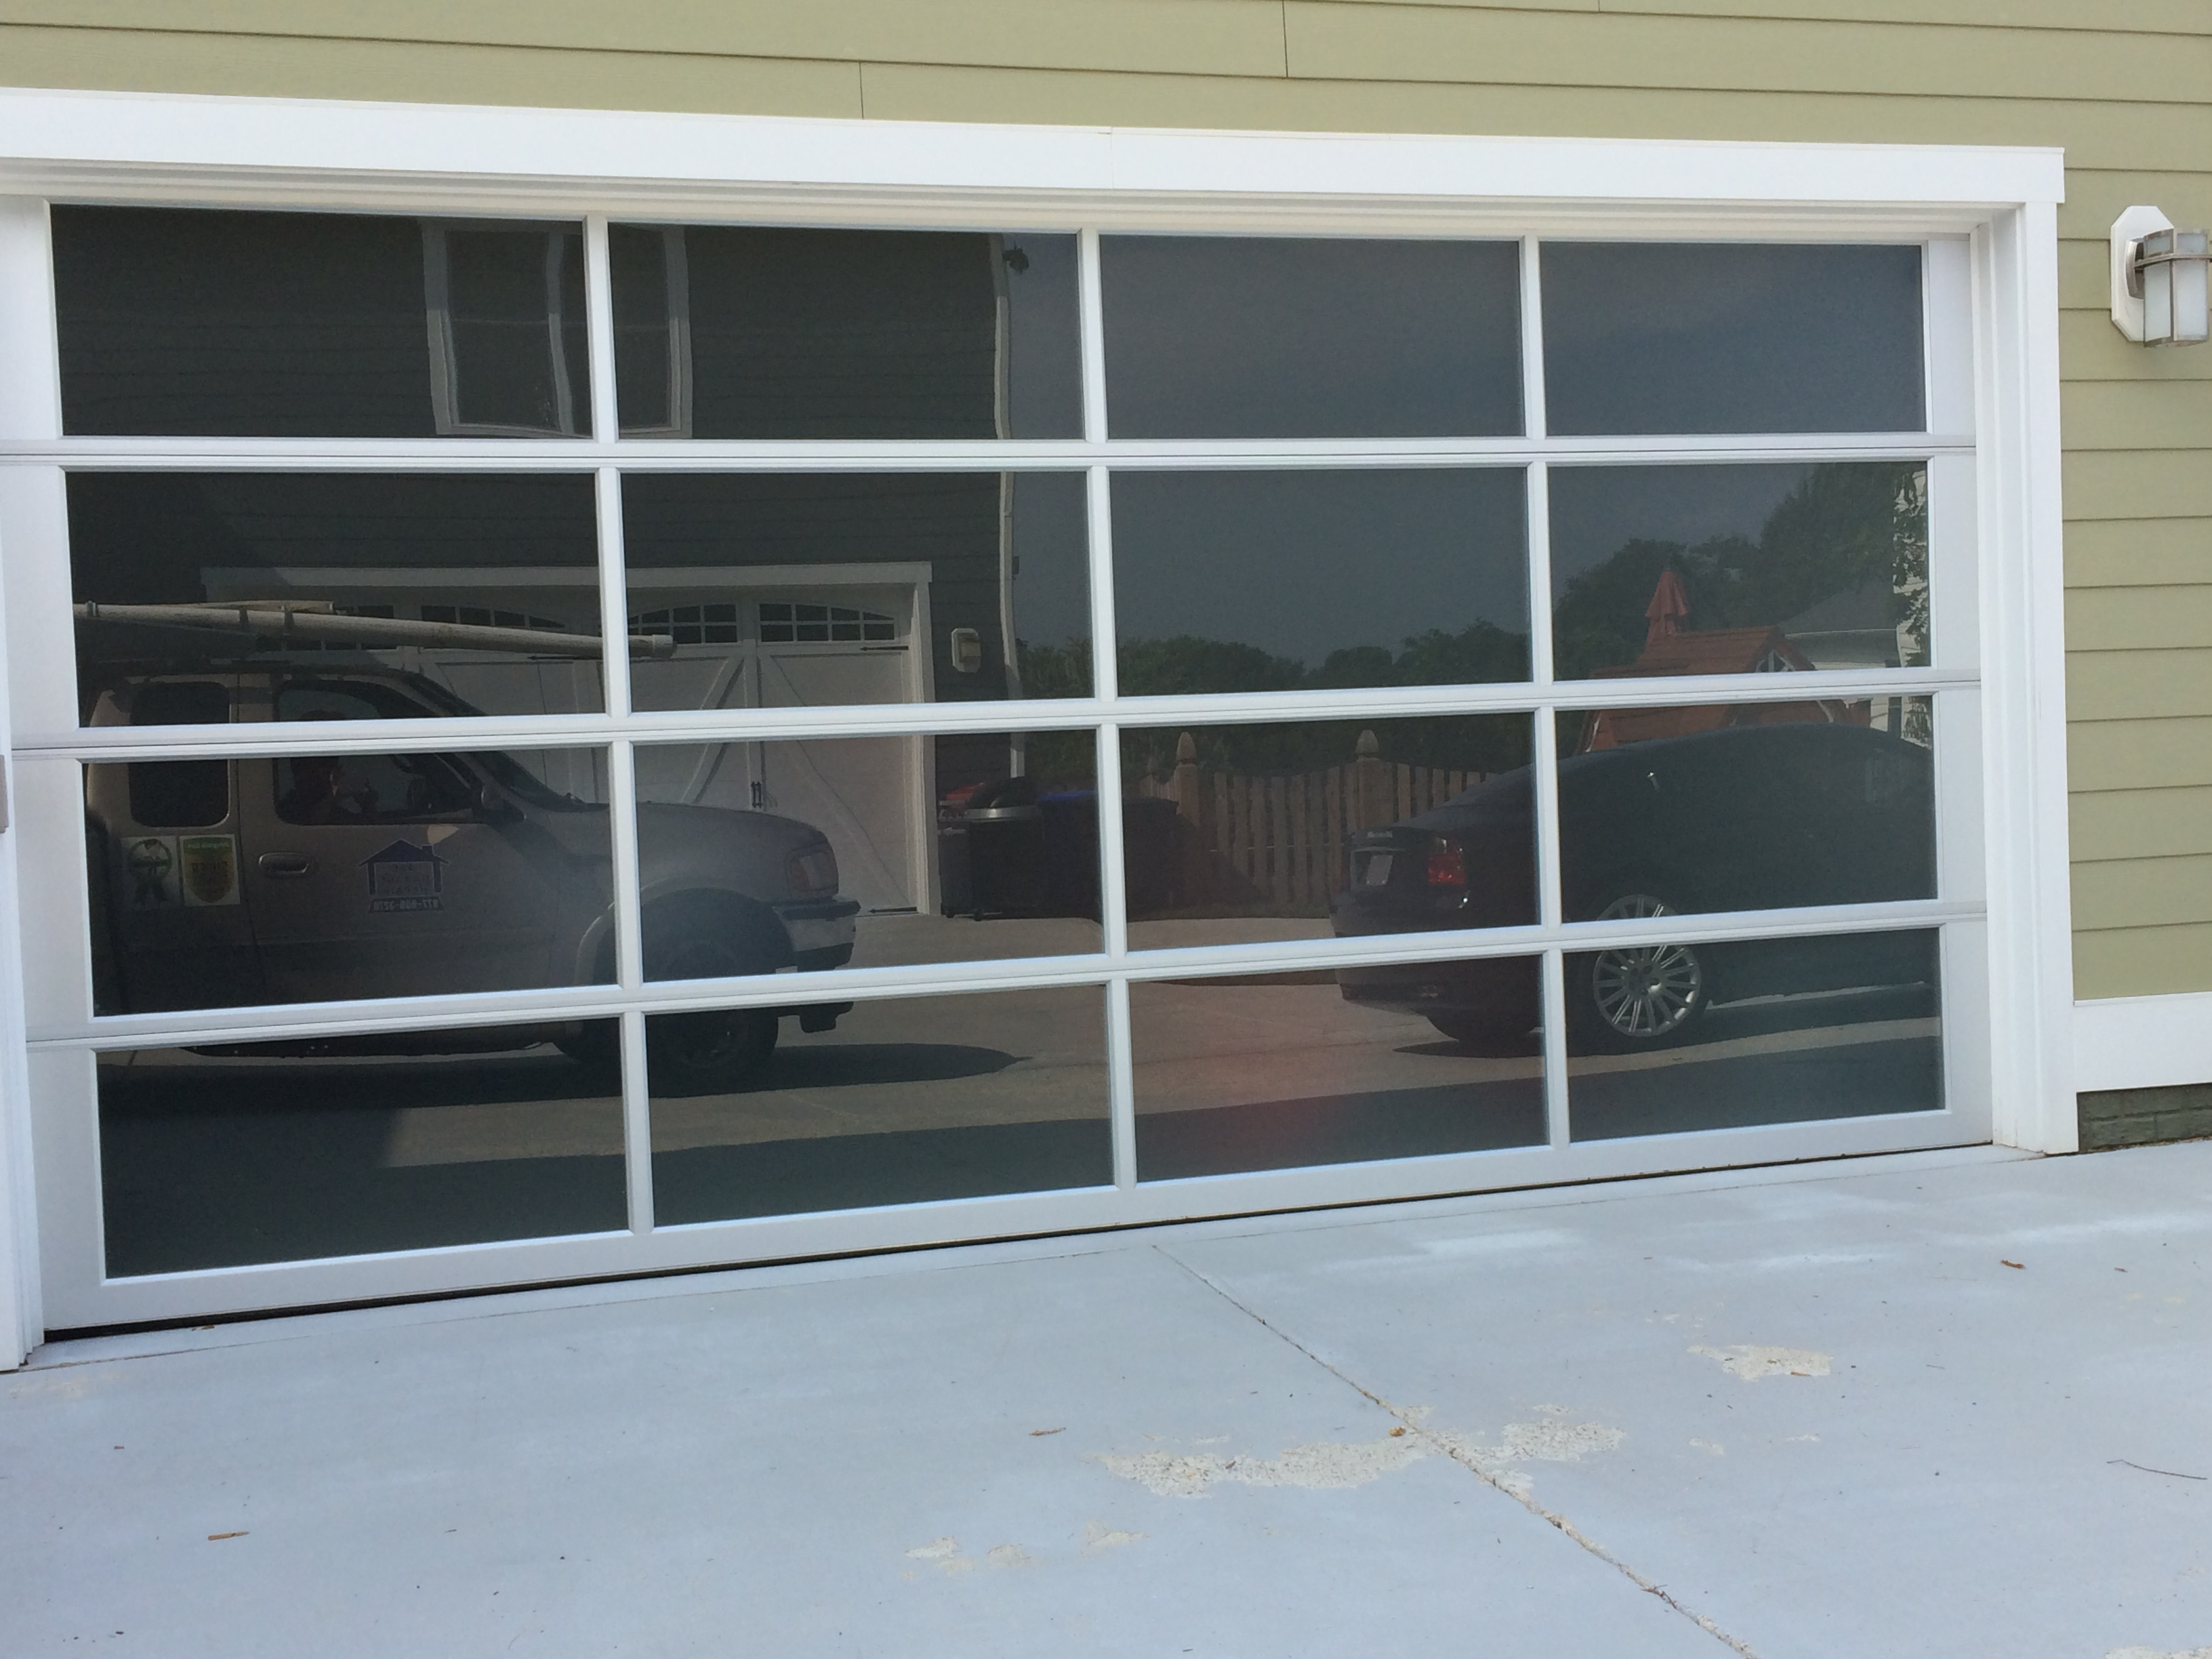 Abc garage door repair in rockville md whitepages for Abc garage doors houston